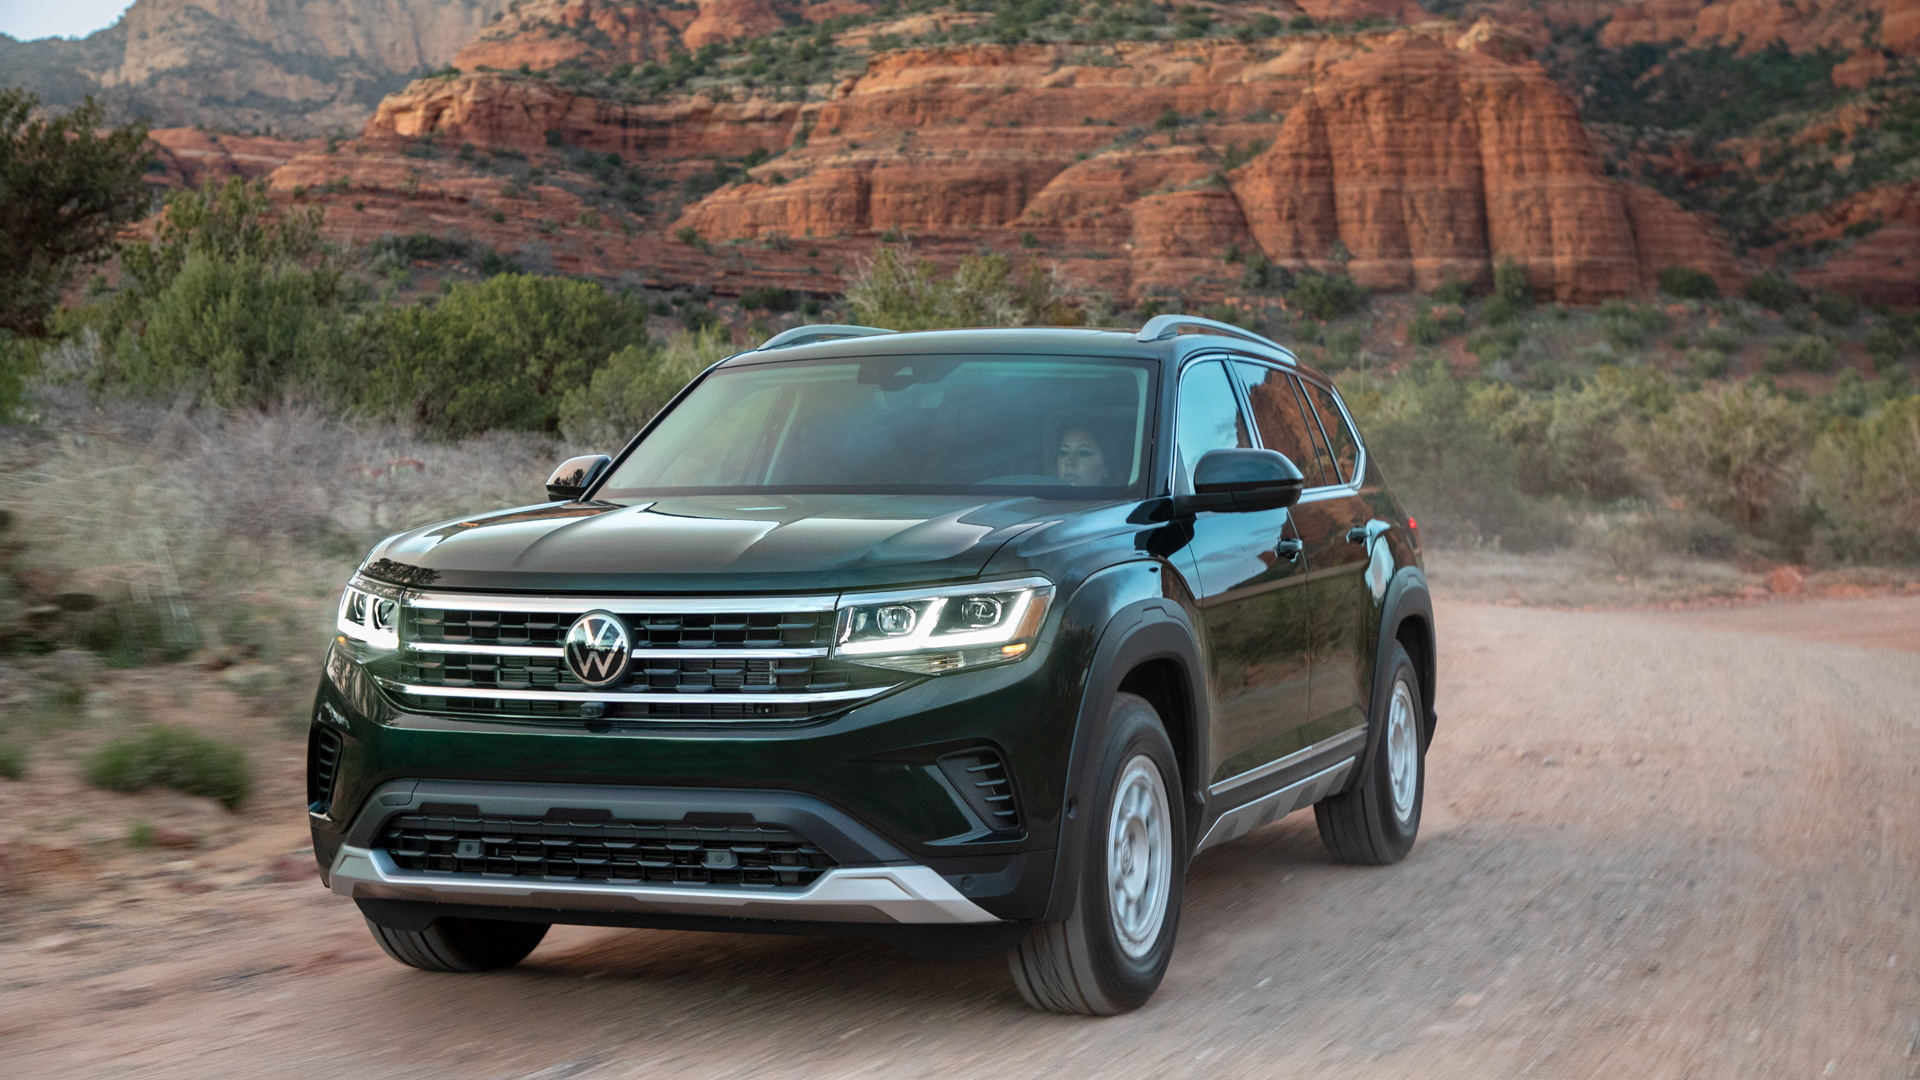 2021 Volkswagen Atlas fitted with Basecamp accessories